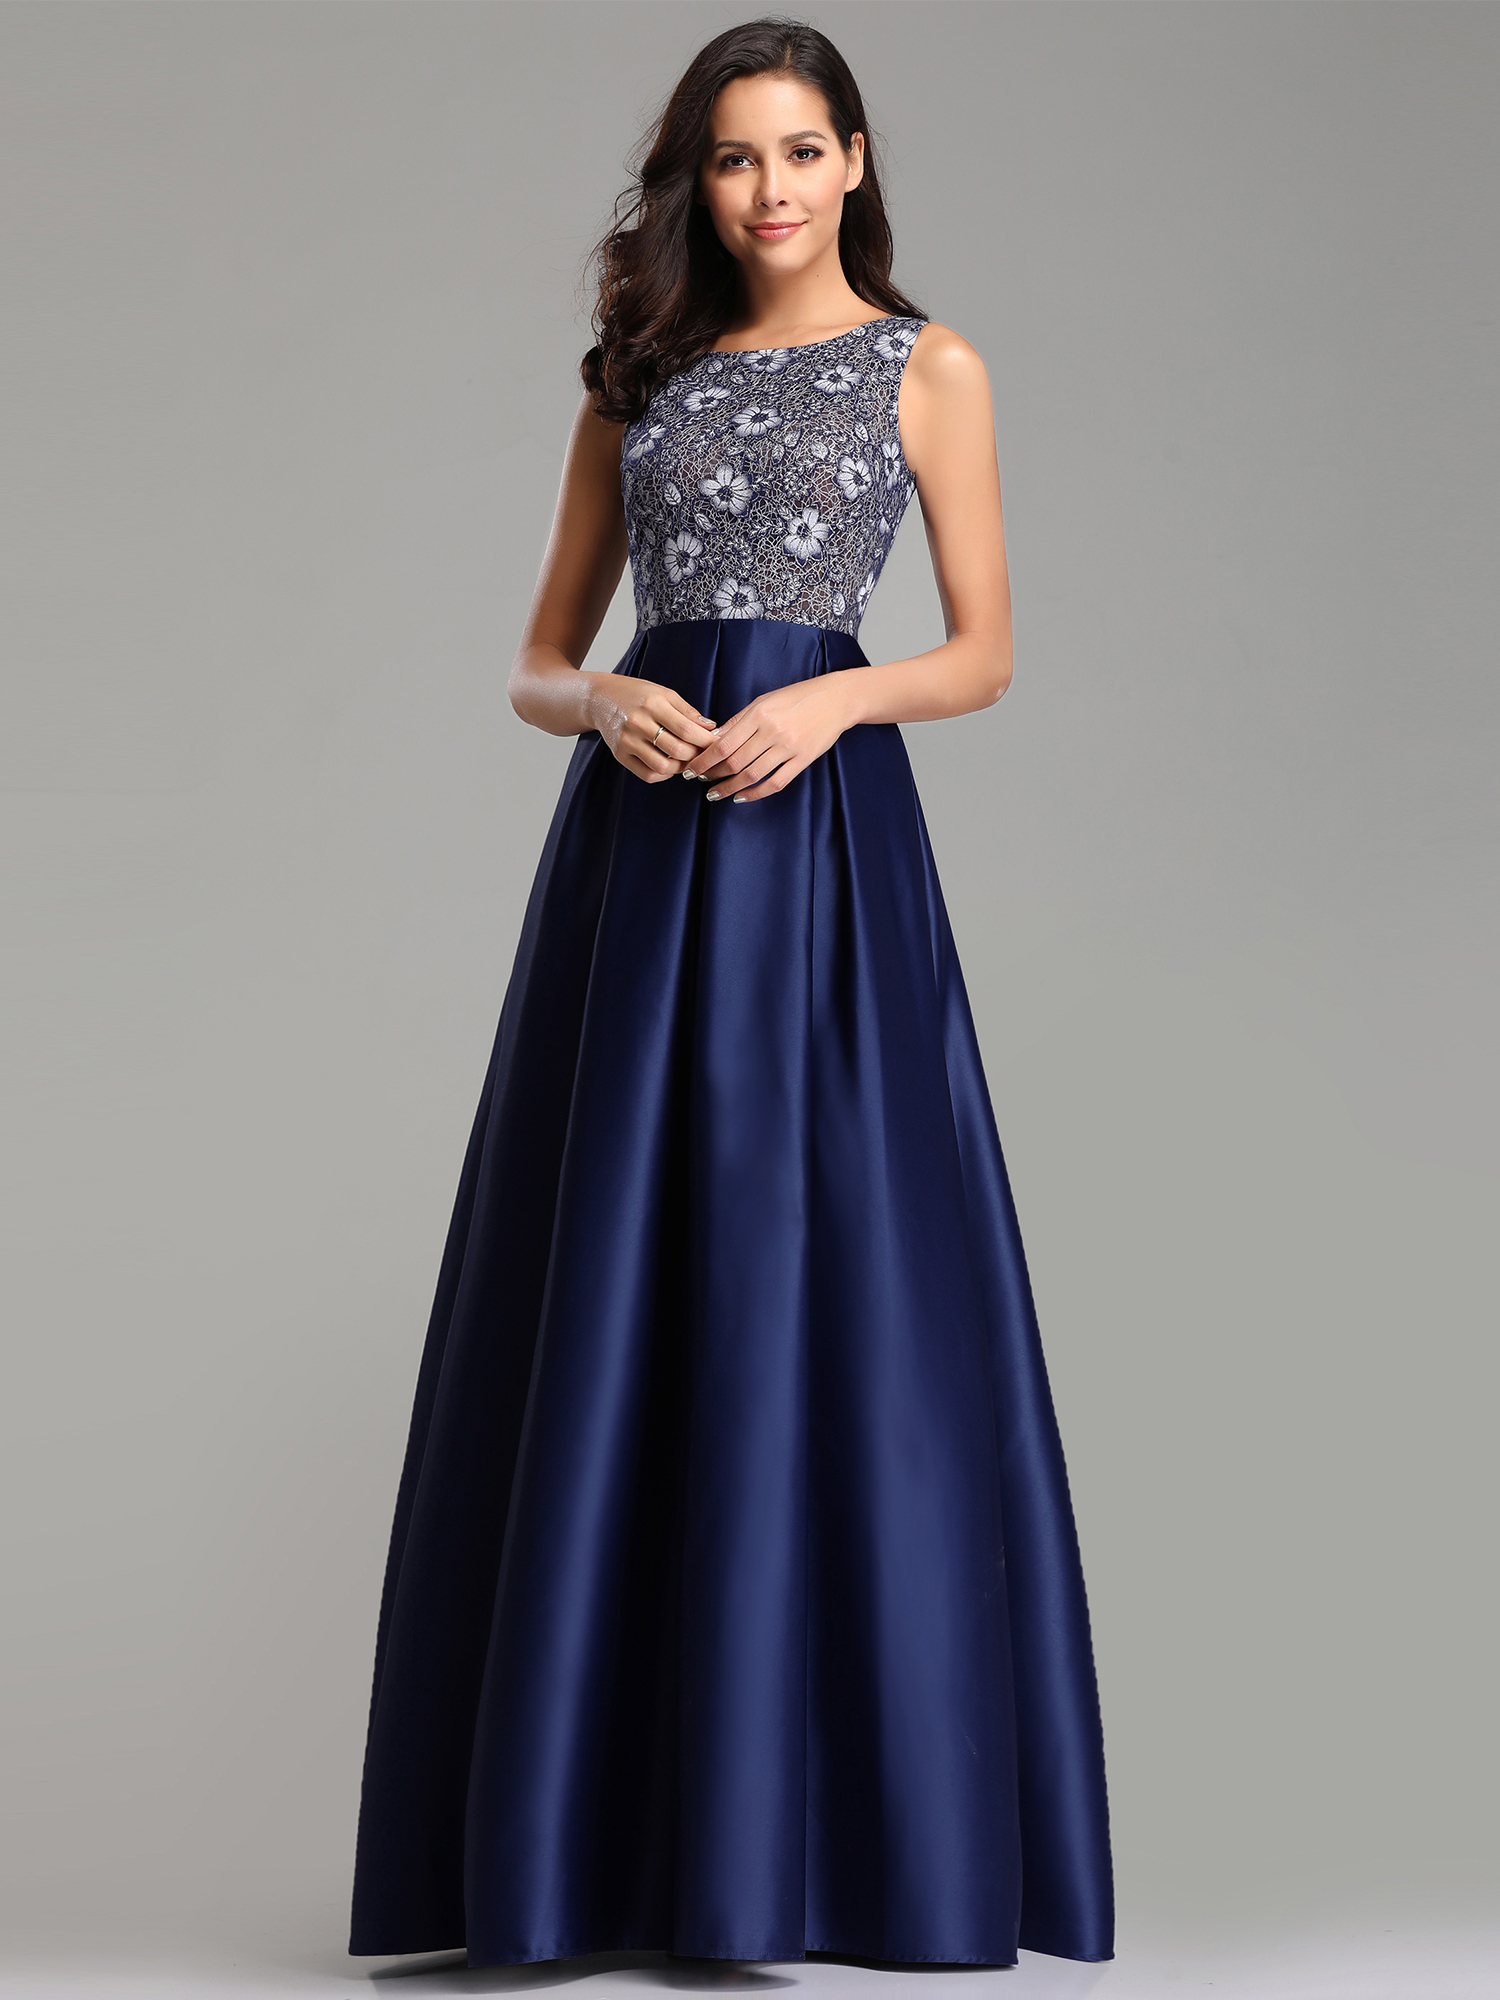 656b90eb5a063 Ever-Pretty Womens A Line Party Dress Lace Long Formal Evening ...